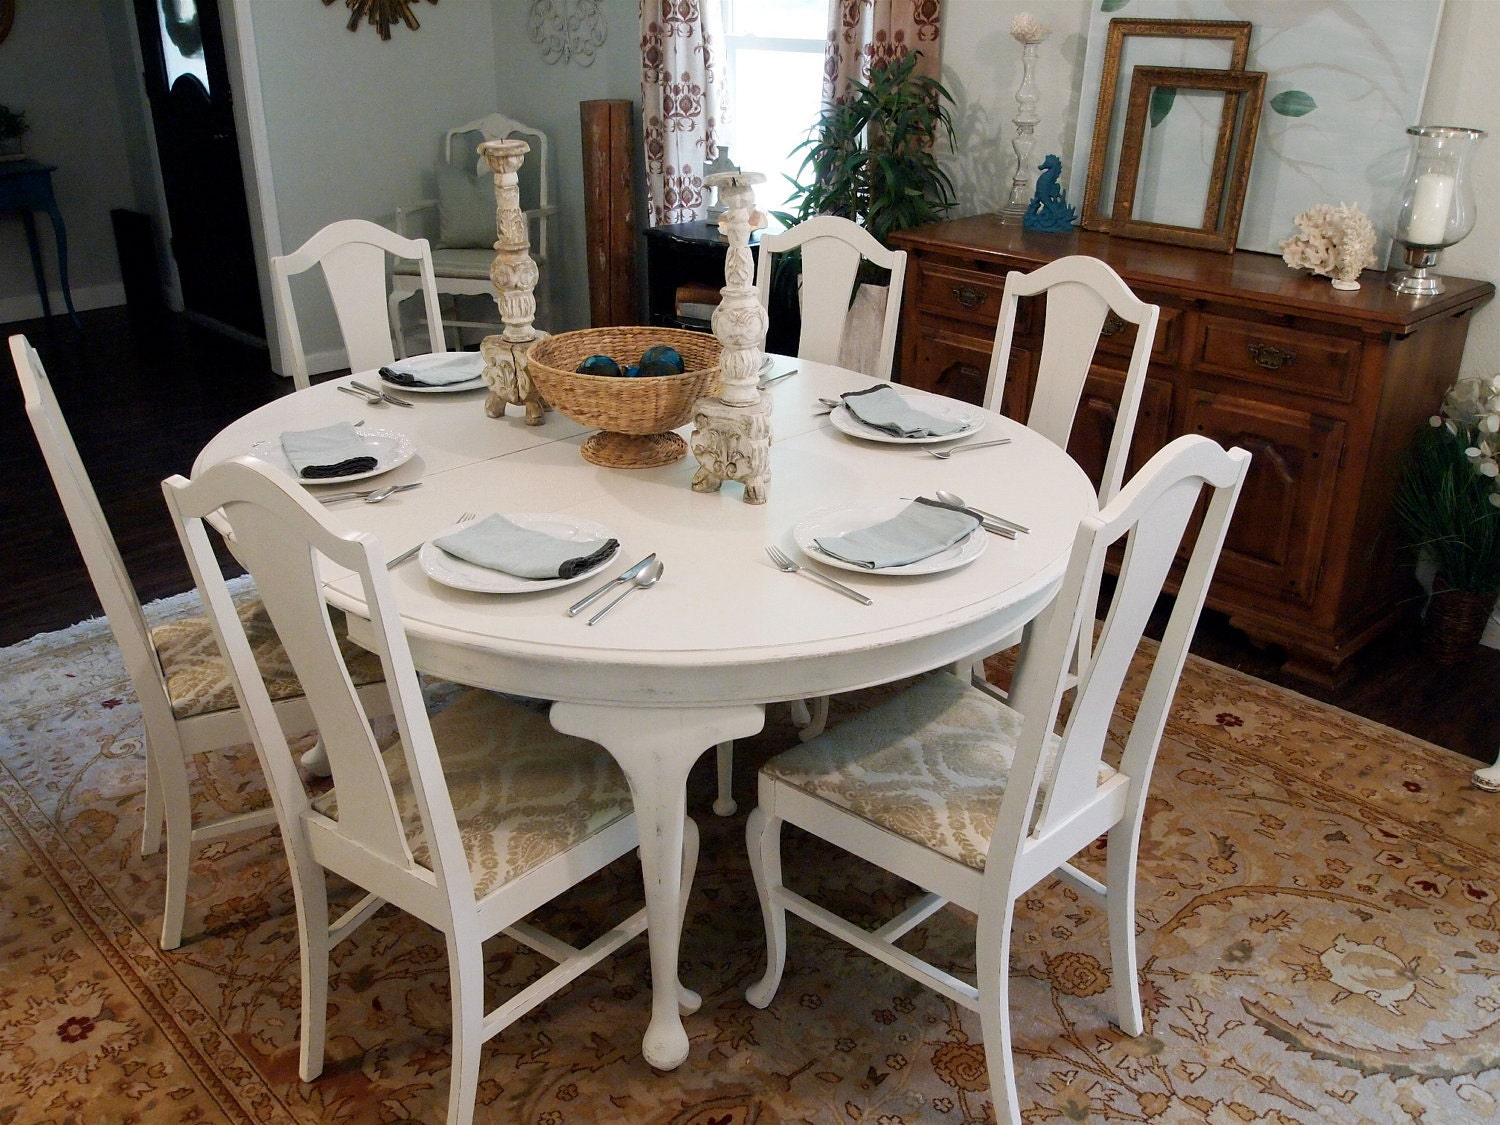 White Round Distressed Dining Table with 6 Queen Anne Chairs : ilfullxfull276900802 from www.etsy.com size 1500 x 1125 jpeg 432kB